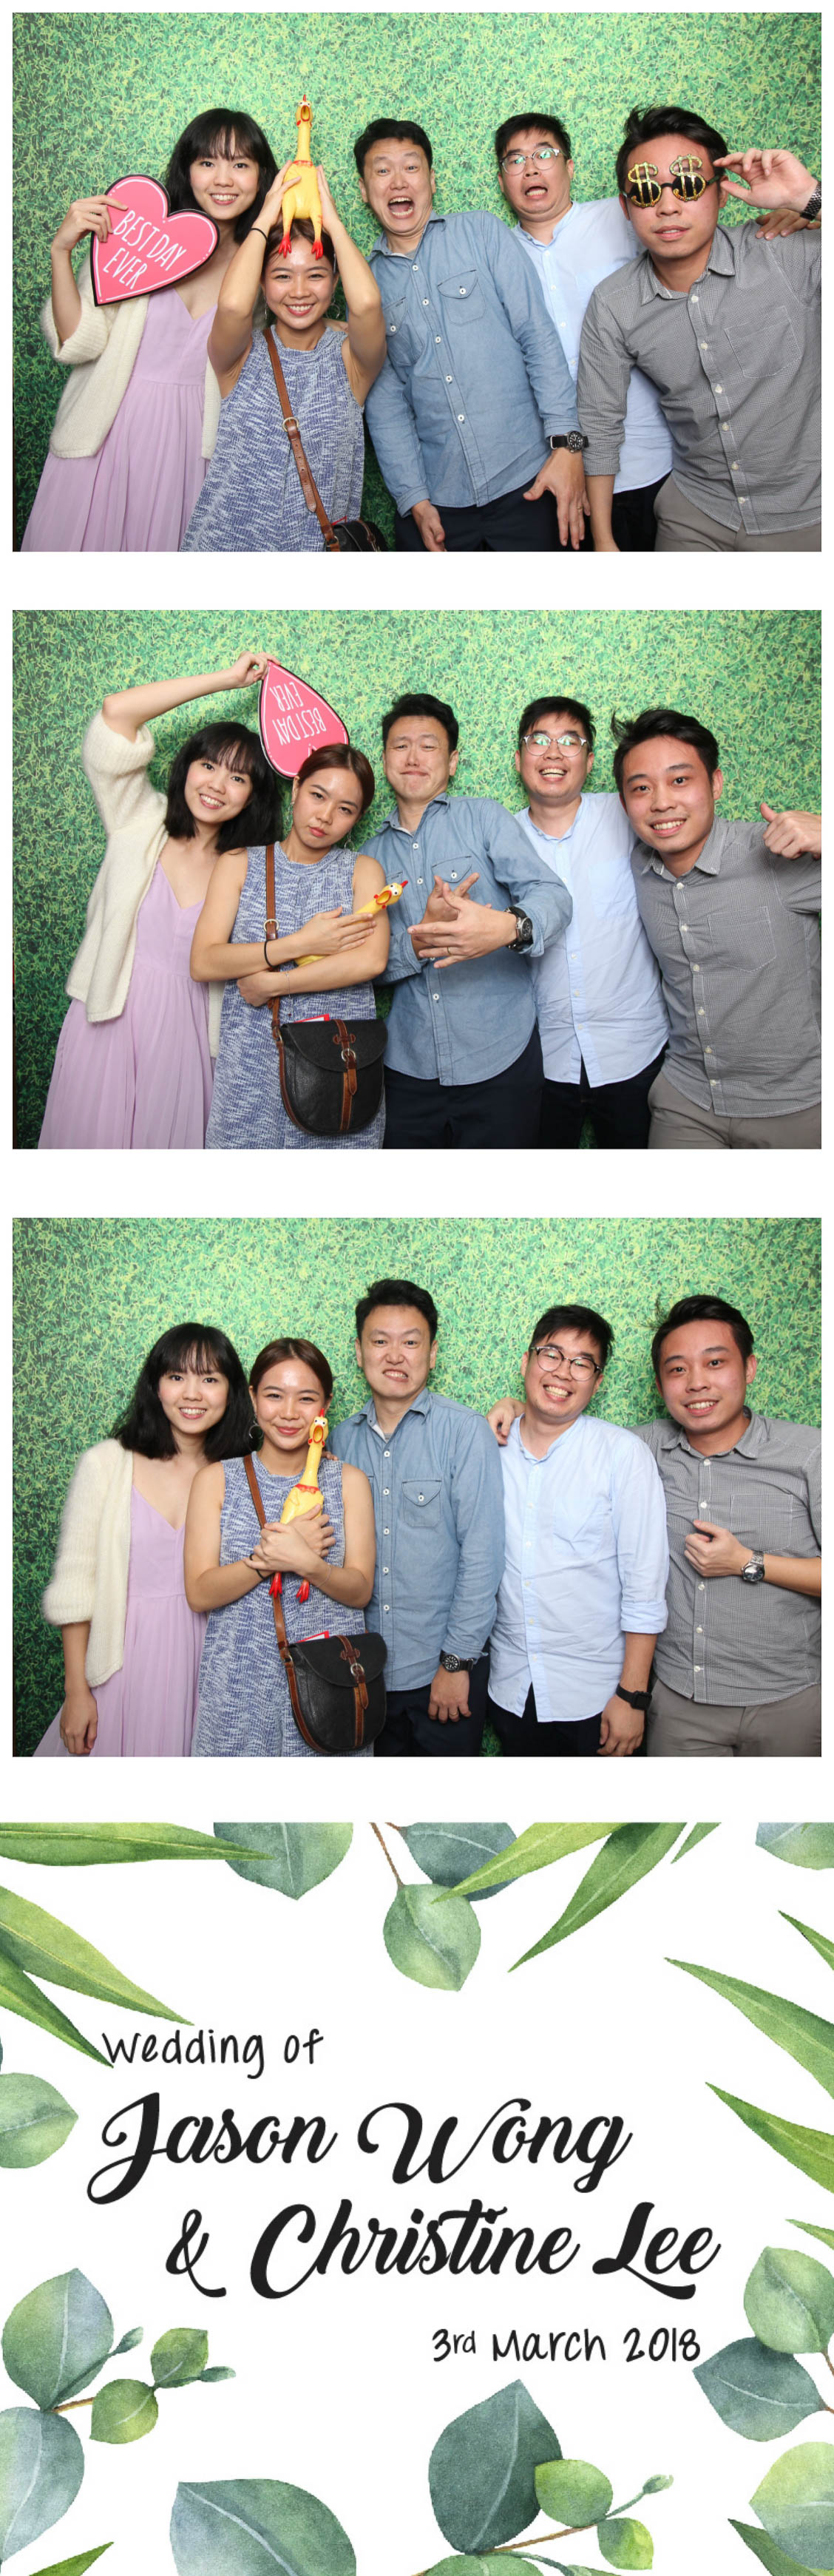 Photobooth 0302-45